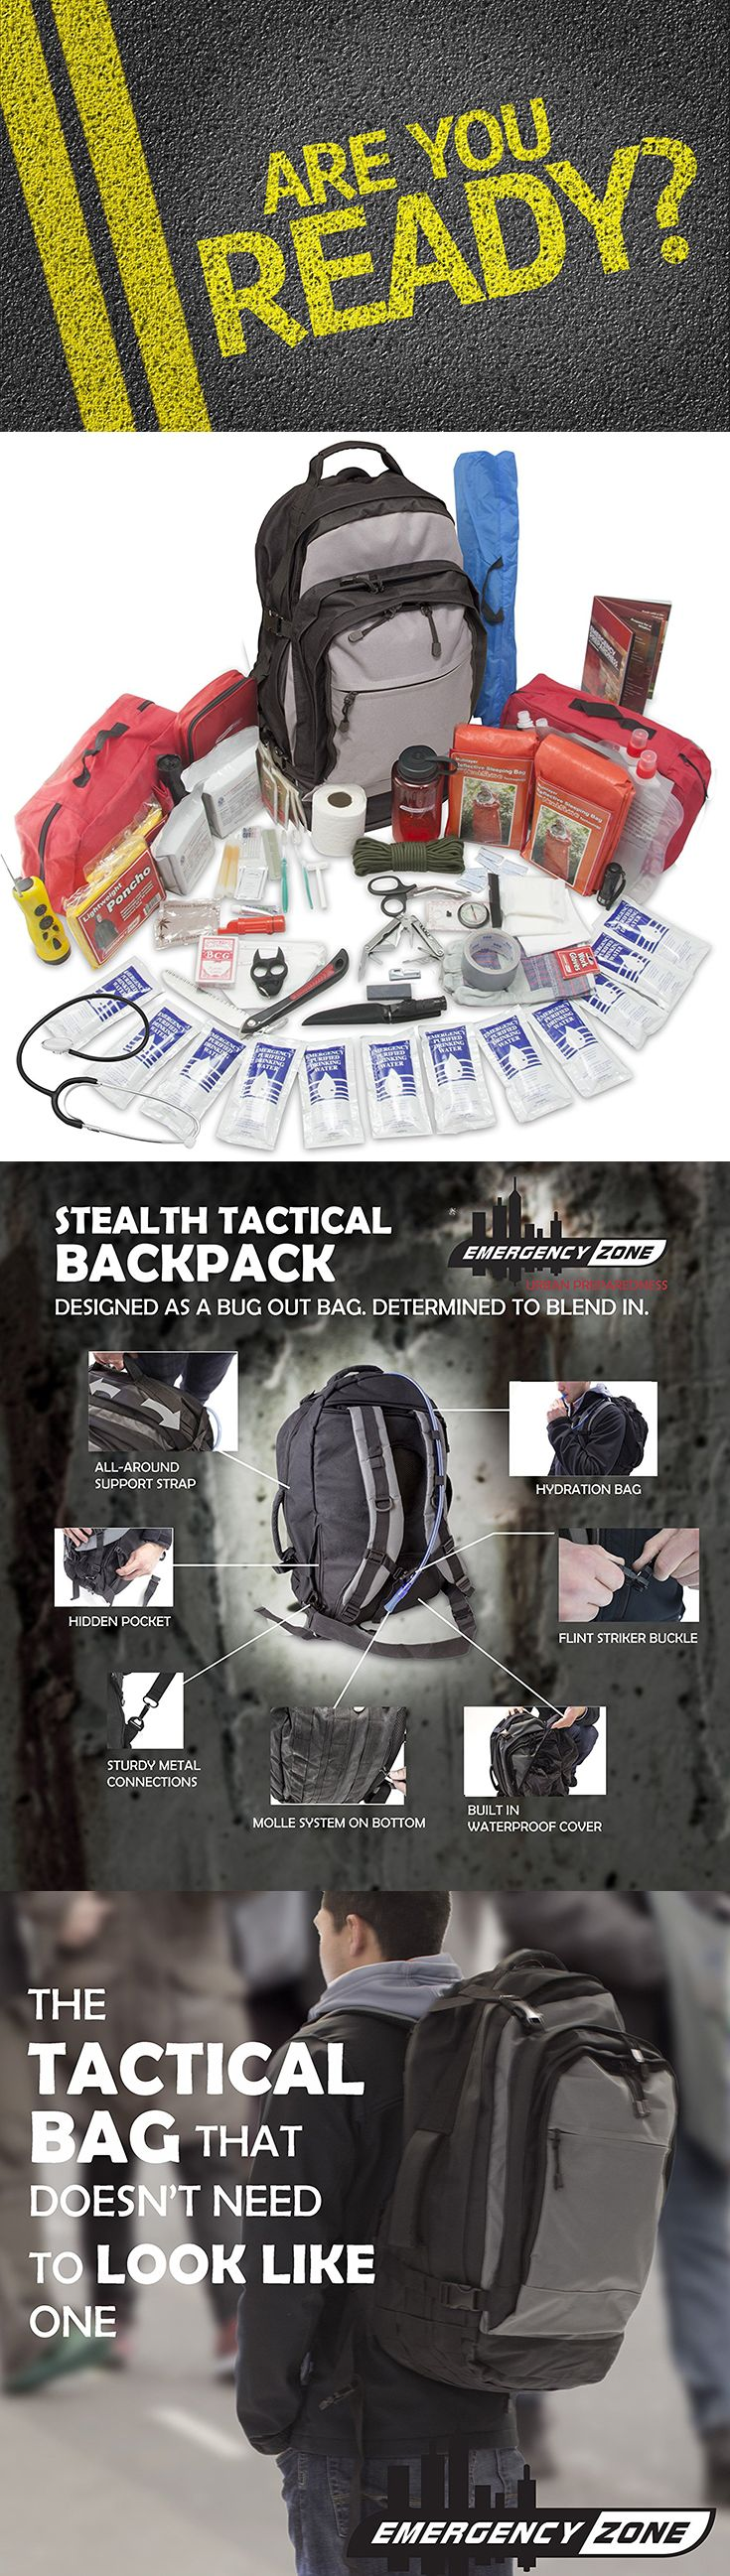 Stealth Tactical Bug-out Bag-2 Person, Emergency Urban Survival 72 houKit, Discrete Design for Urban Survival